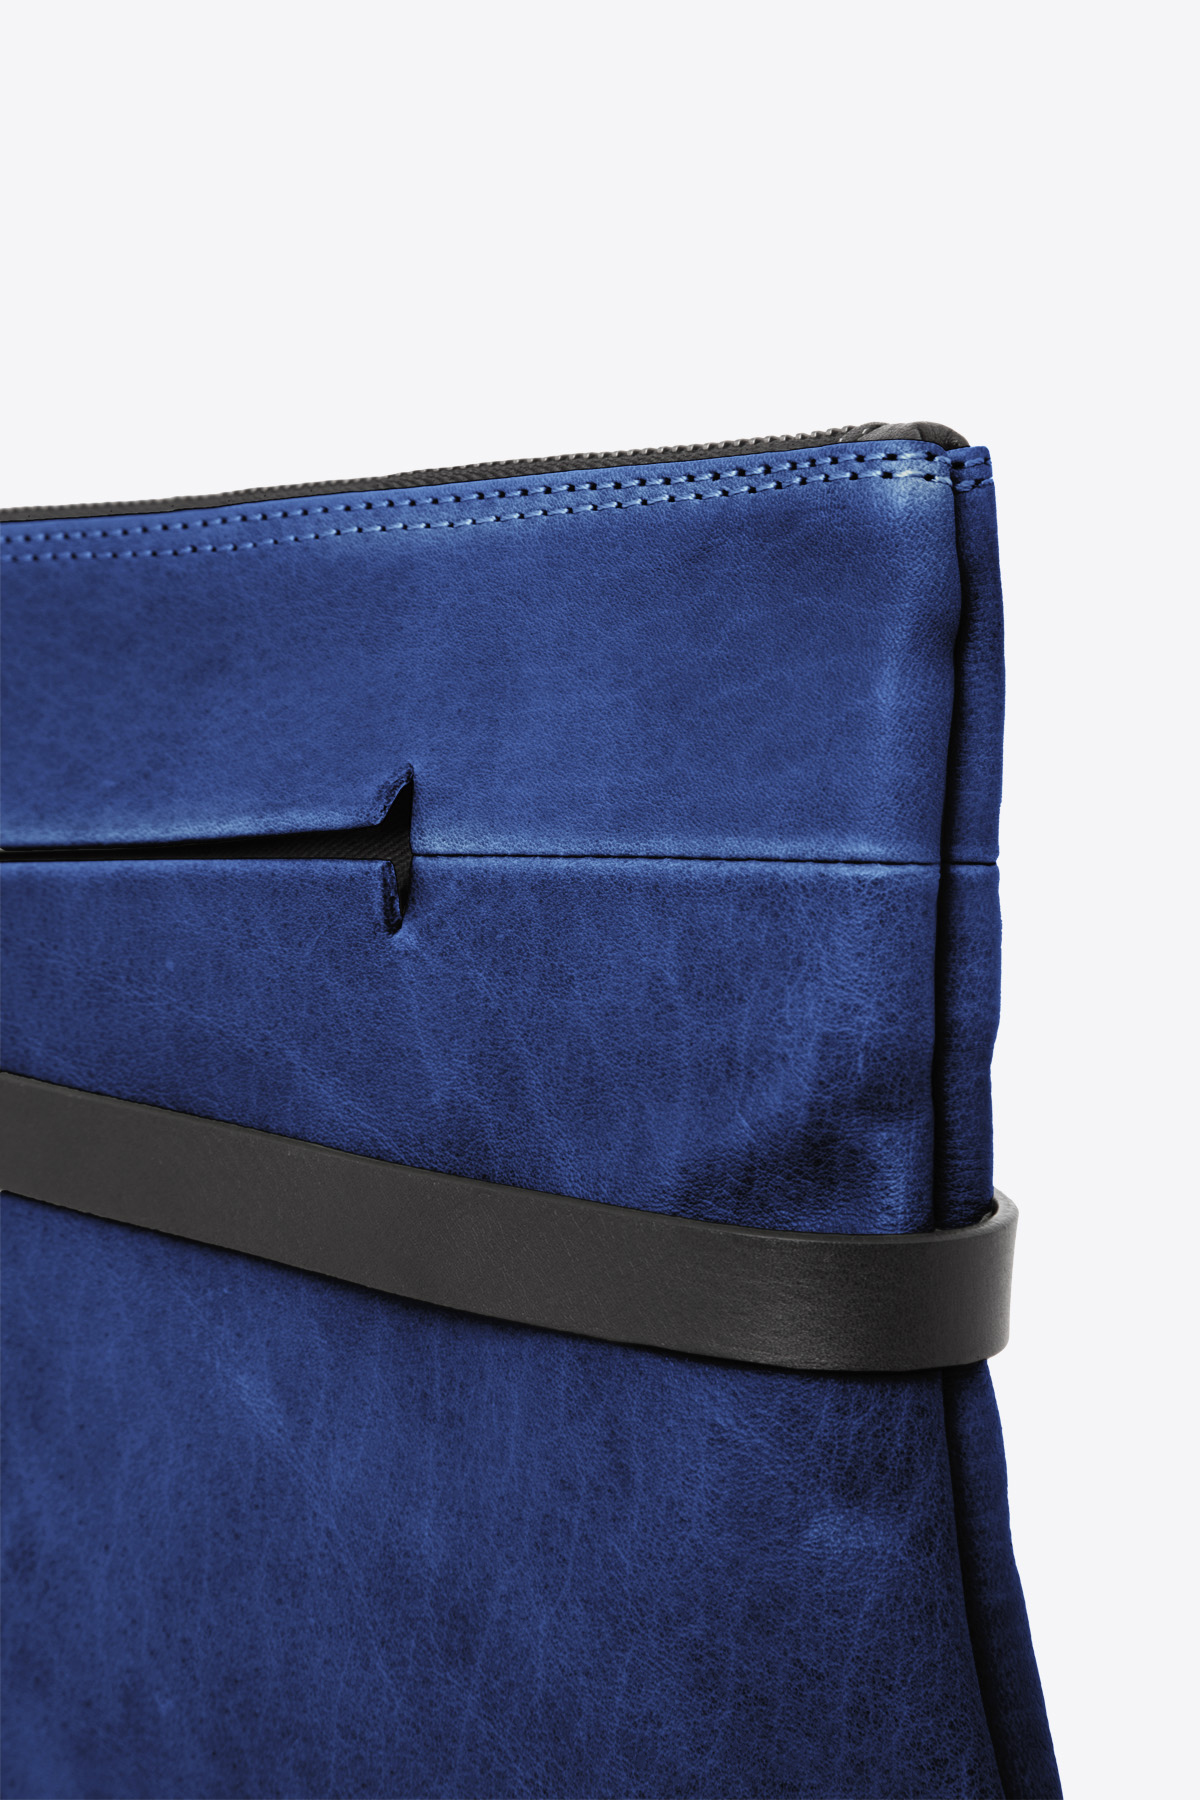 dclr004s-tapeclutch-a20-royalblue-detail